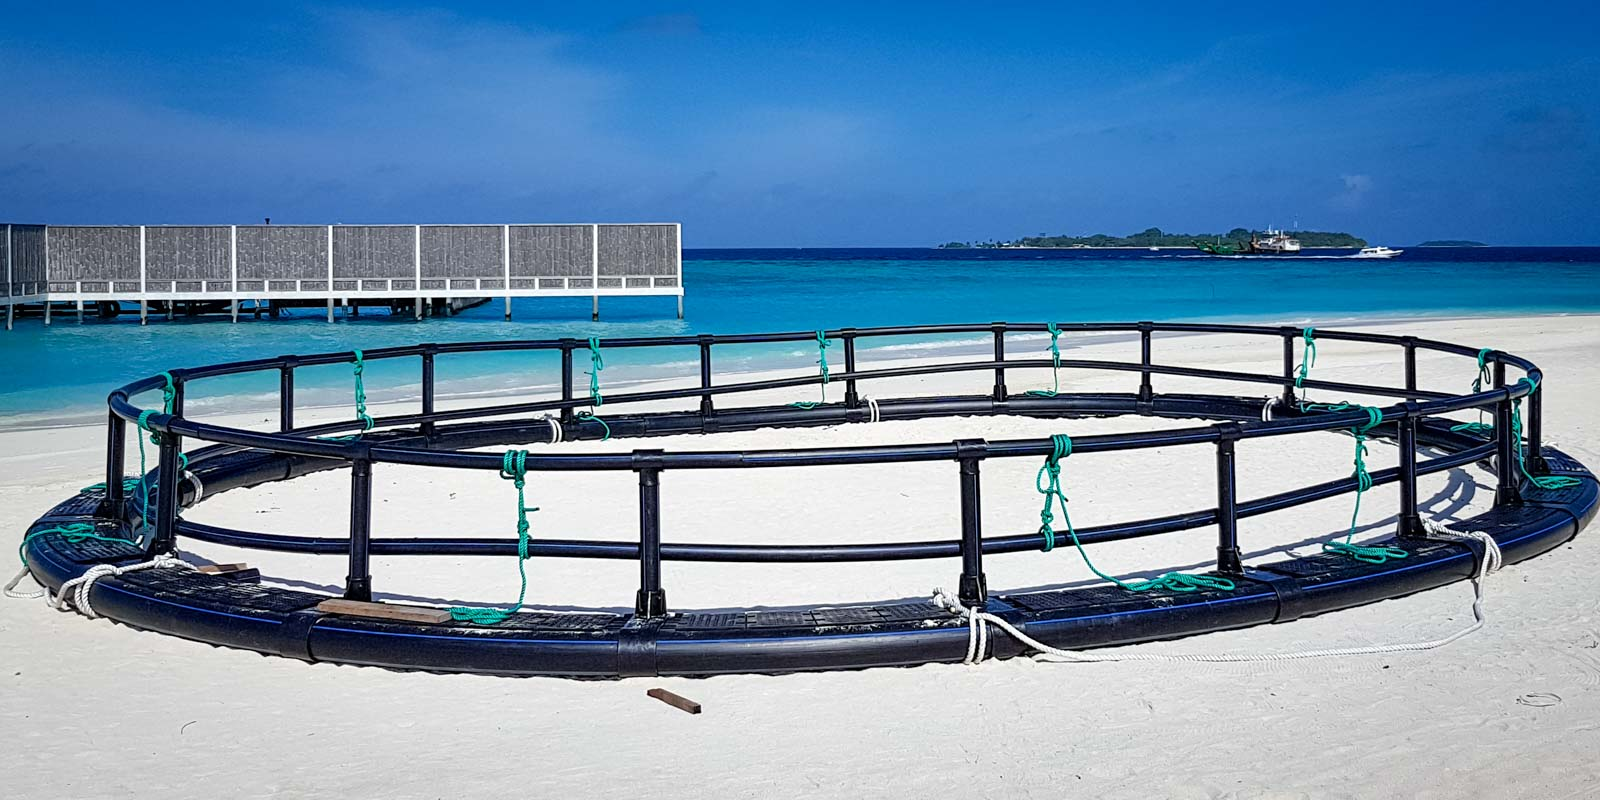 Sea turtle rehabilitation enclosure Marine Savers Maldives (1) assembly